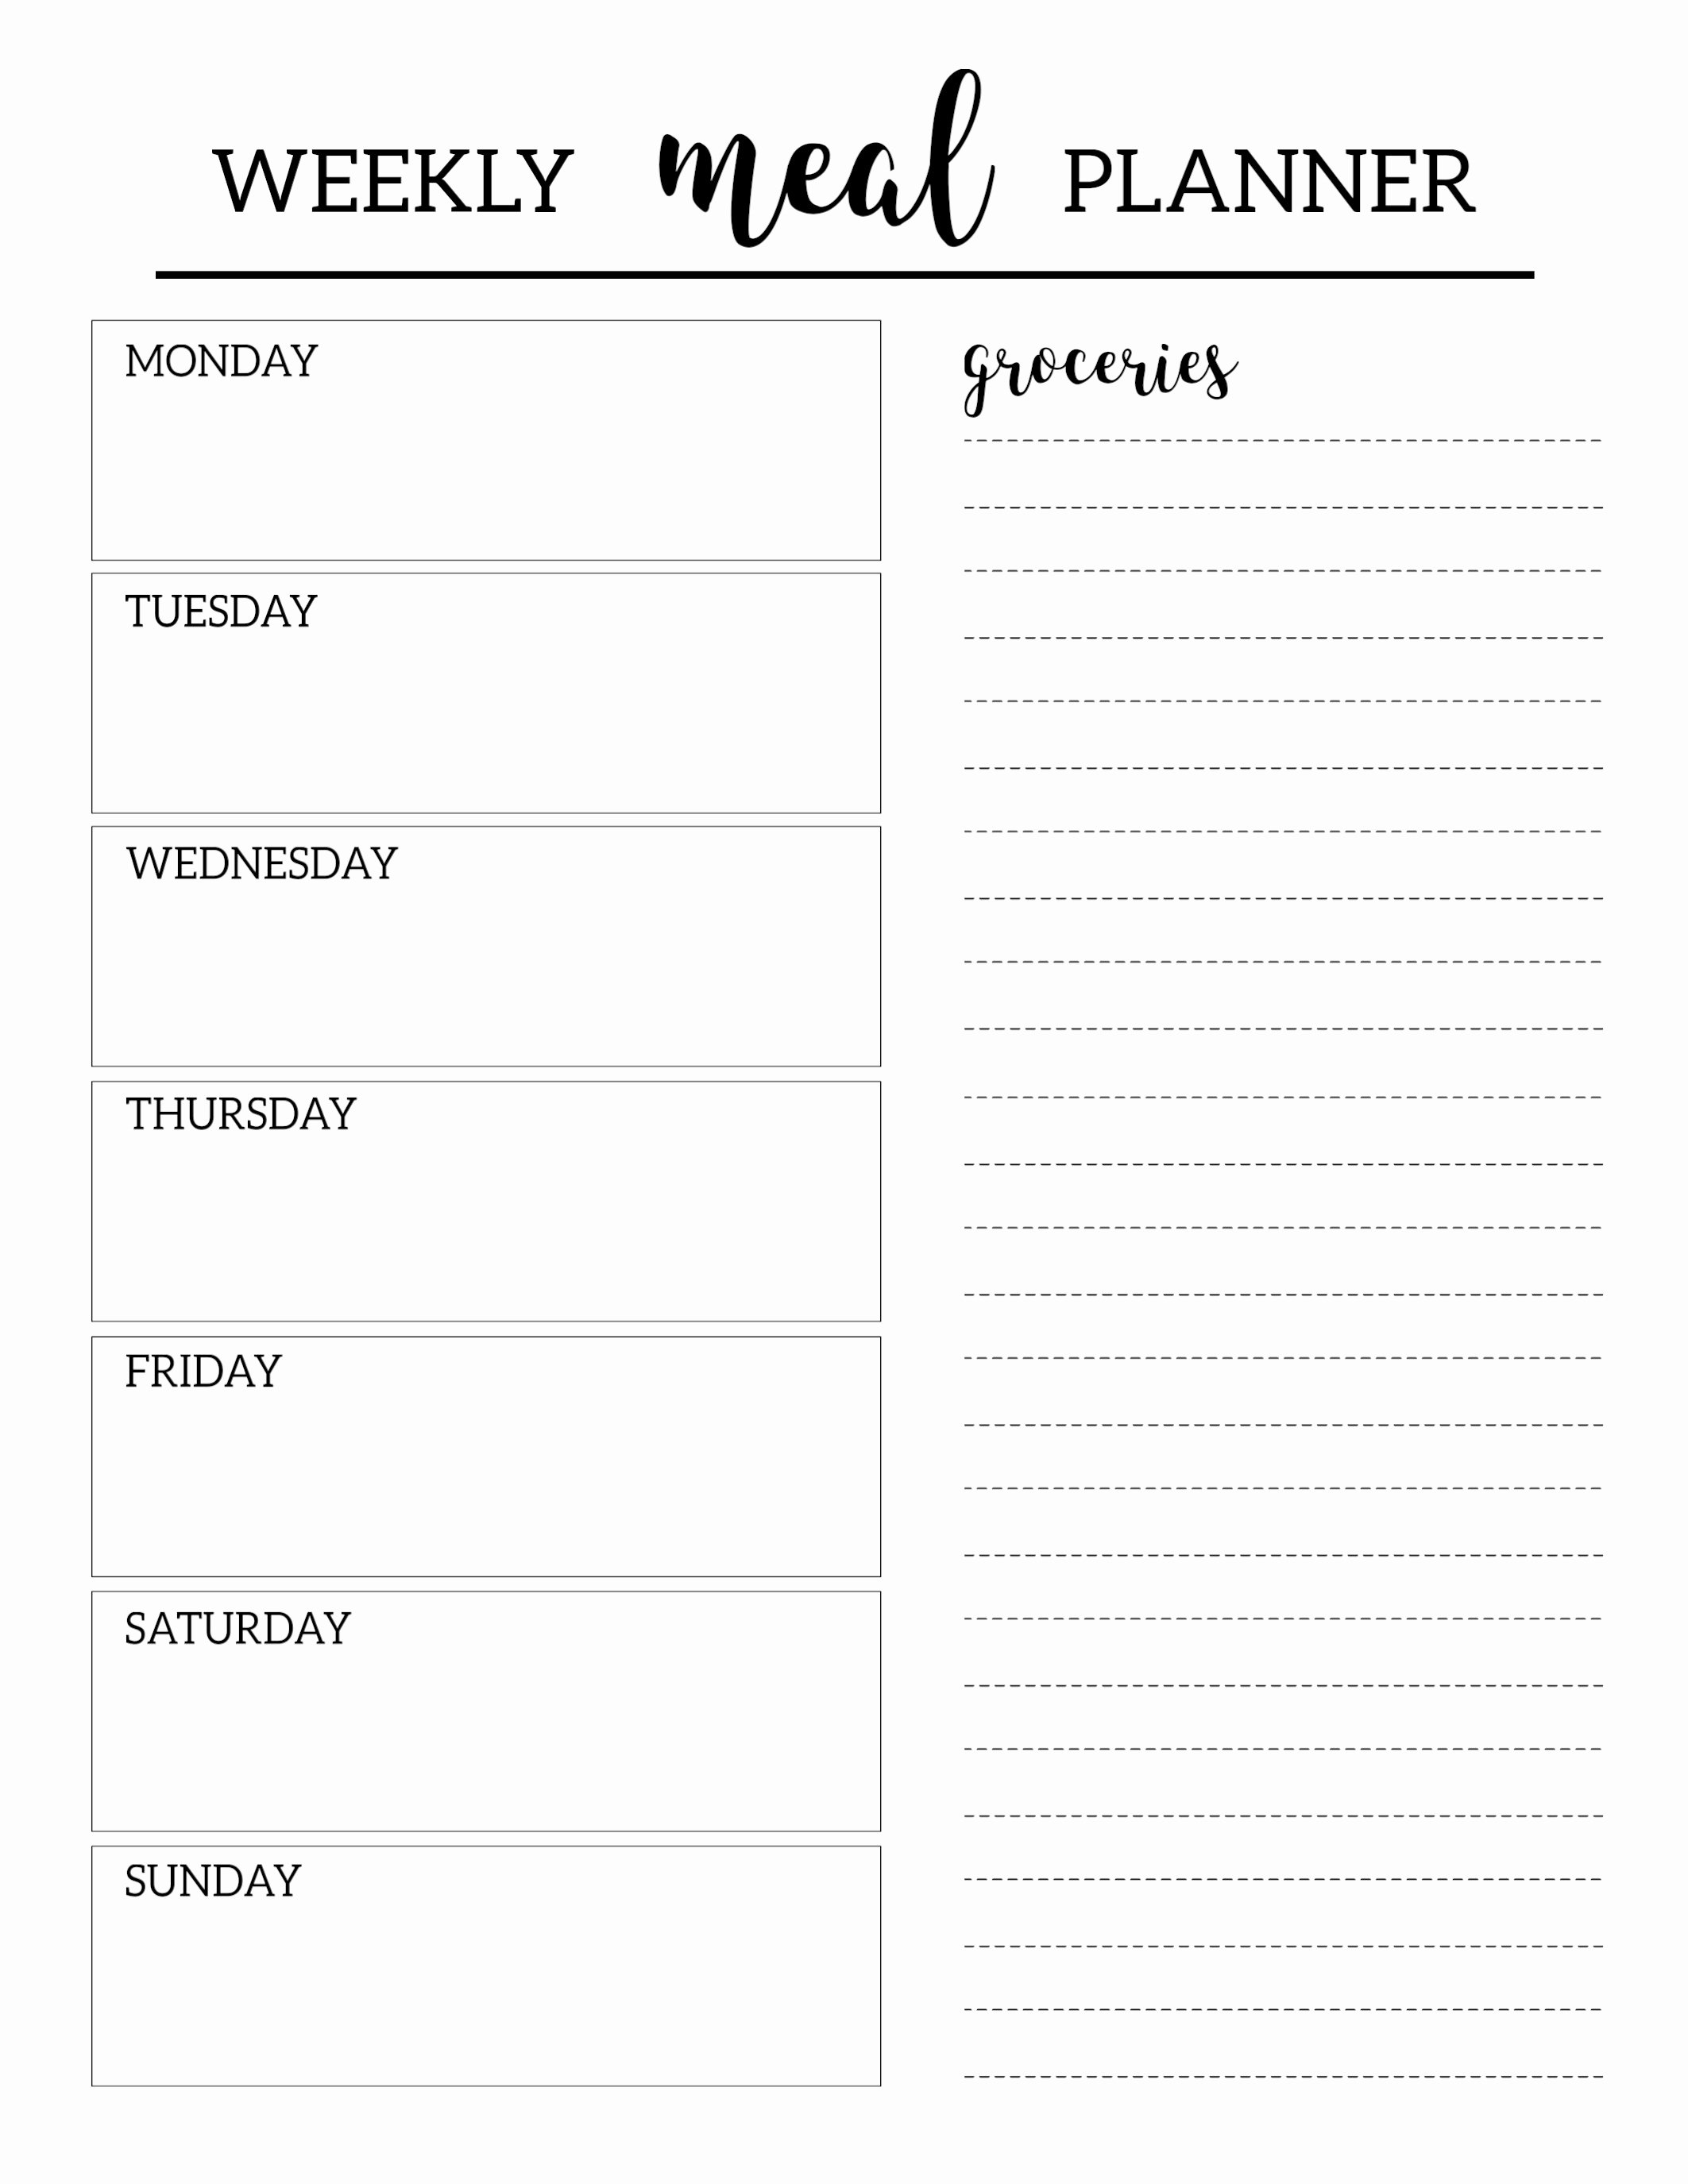 Free Meal Planner Template Beautiful Free Printable Meal Planner Template Paper Trail Design